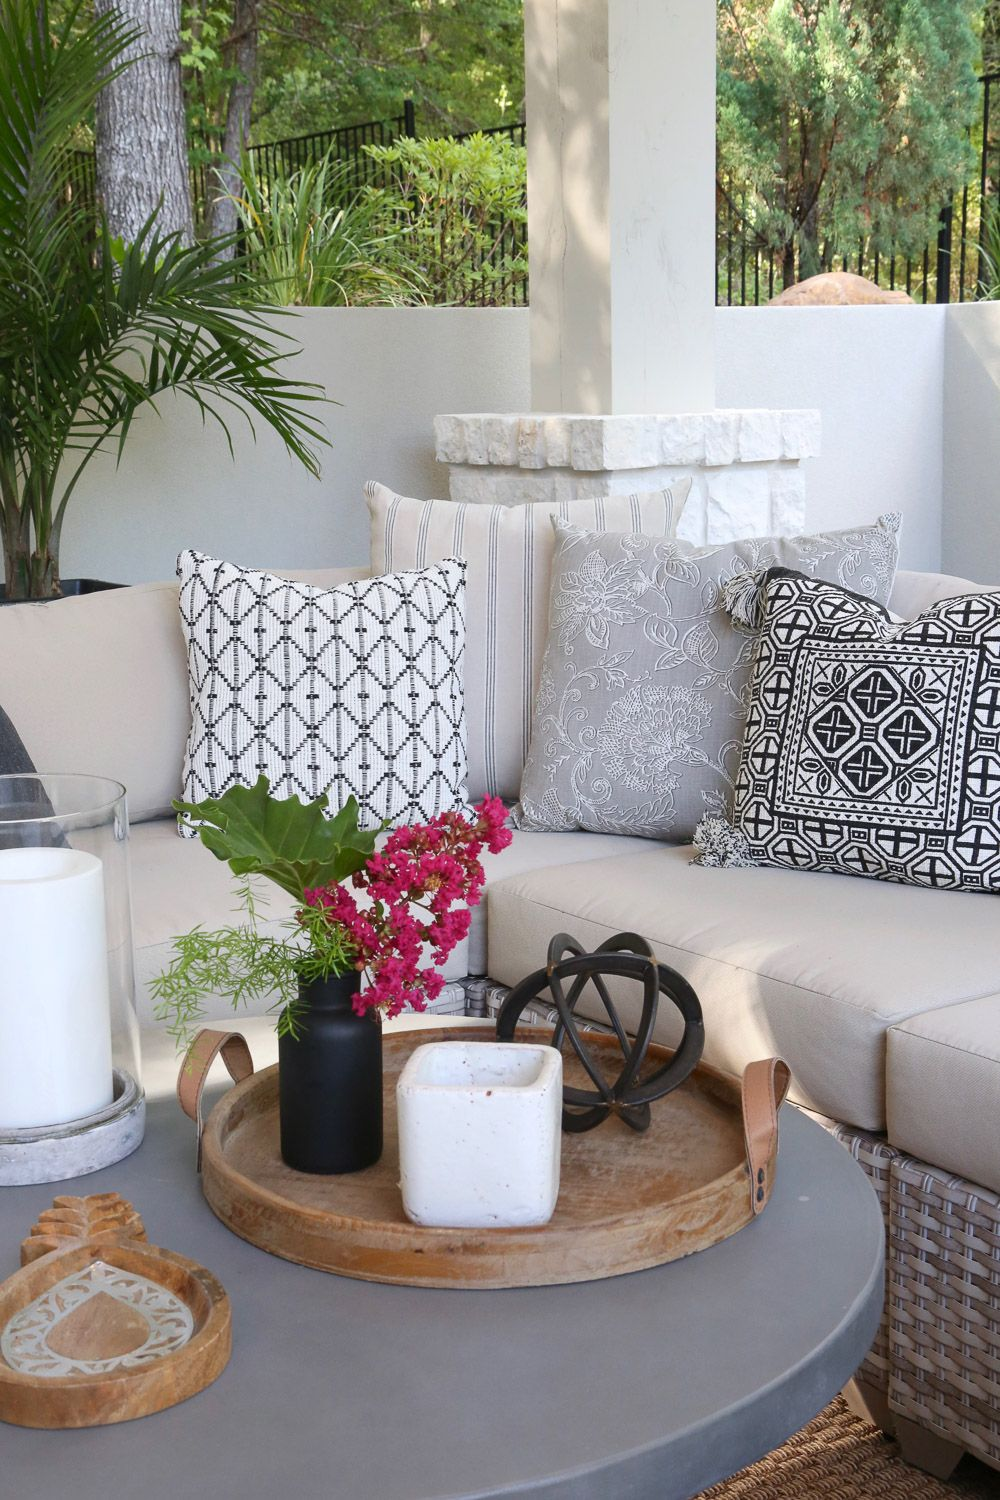 5 Minute Outdoor Decorating Tips And Tricks Summer Outdoor Decor